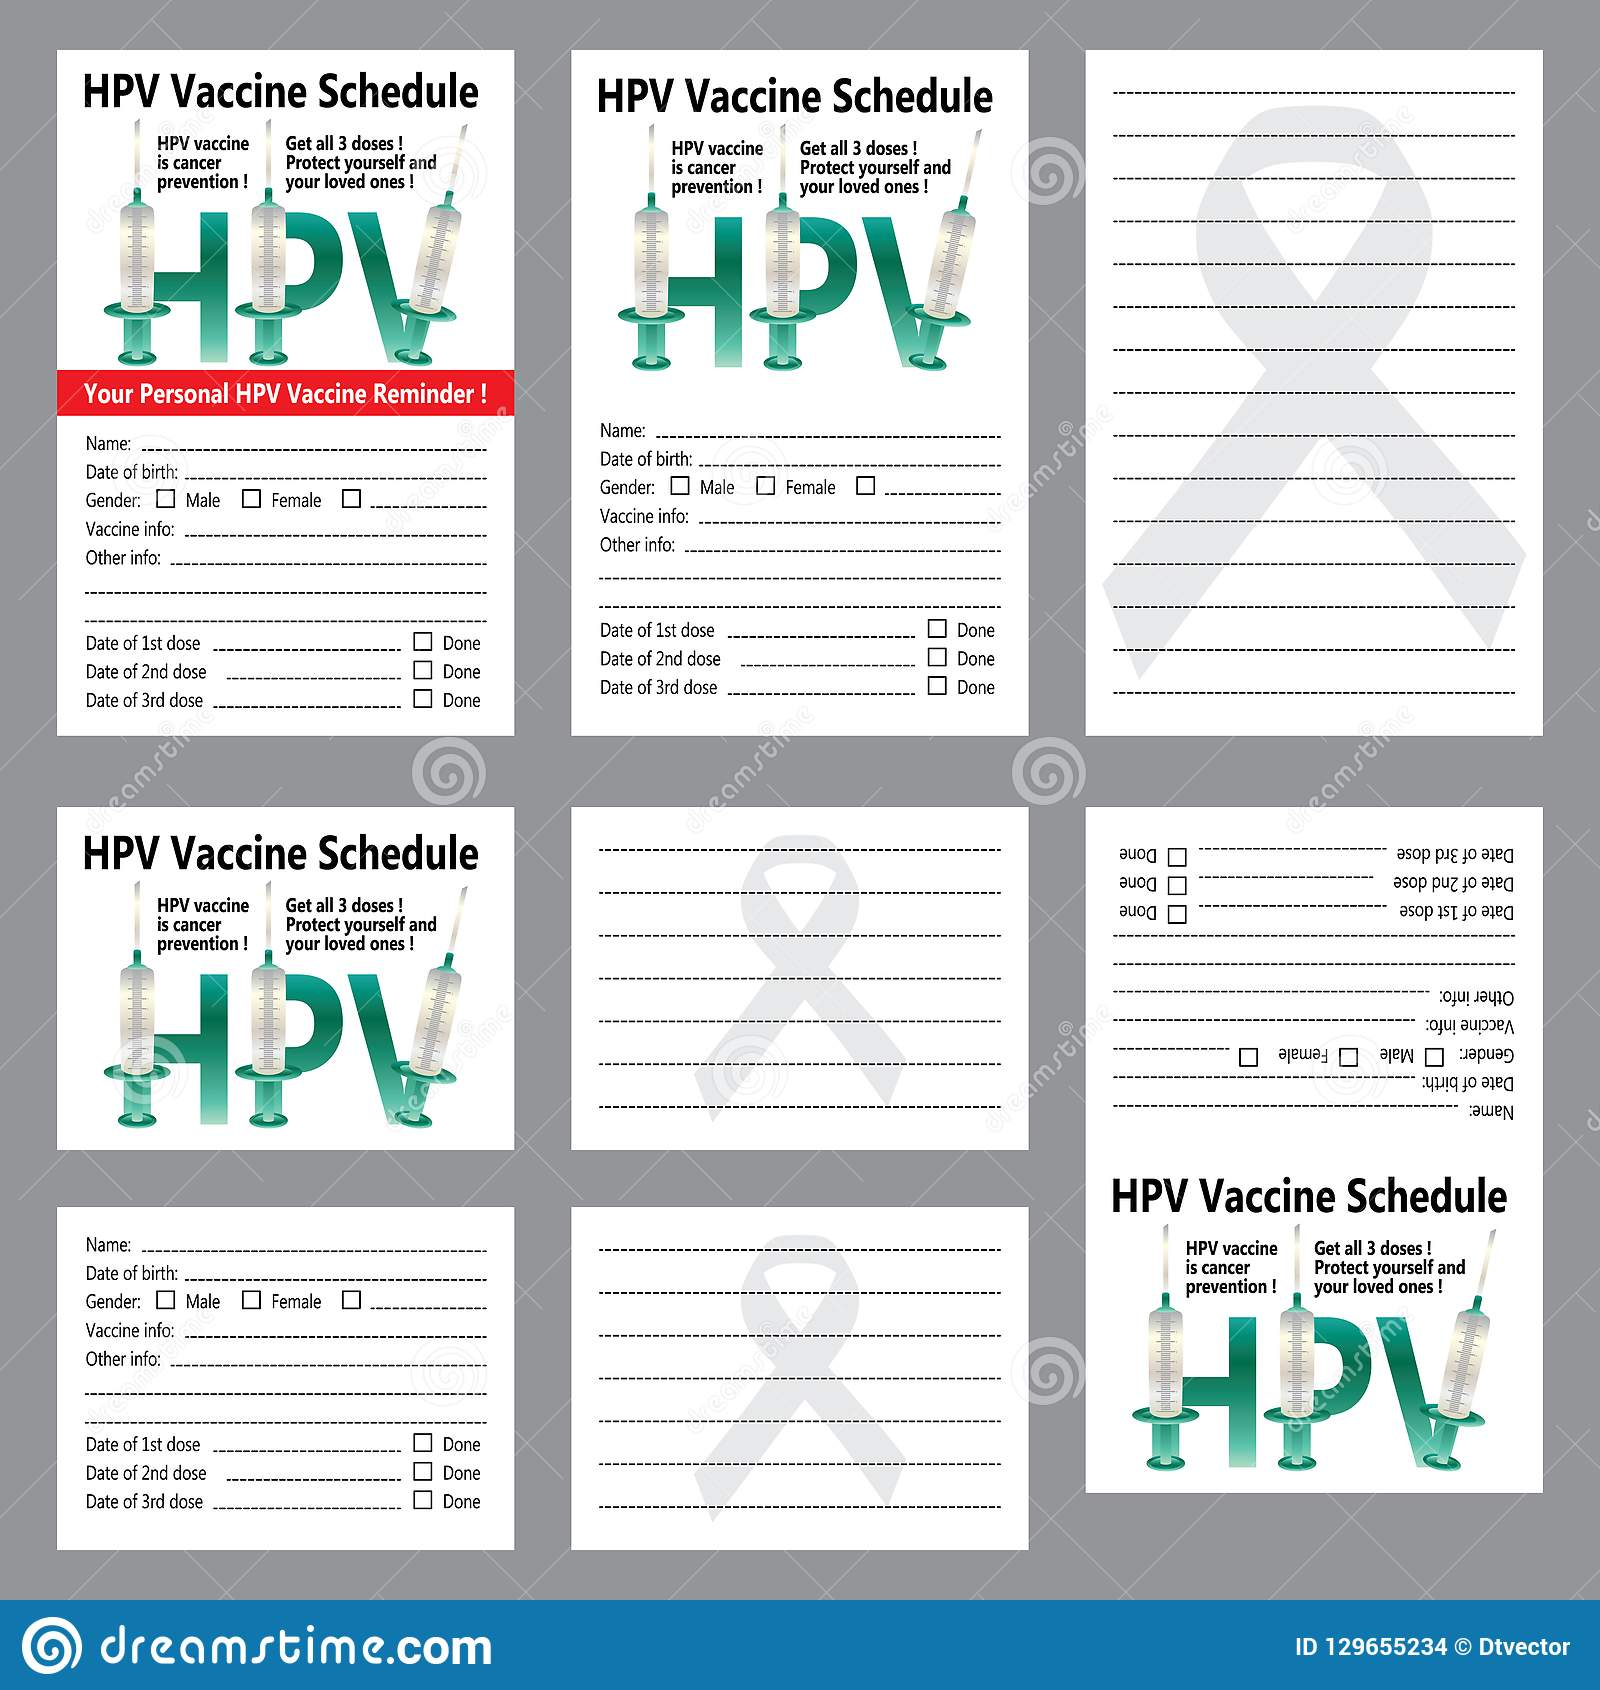 graphic relating to Immunization Card Printable identified as HPV Vaccine Program Reminder Sticker Card Template Preset